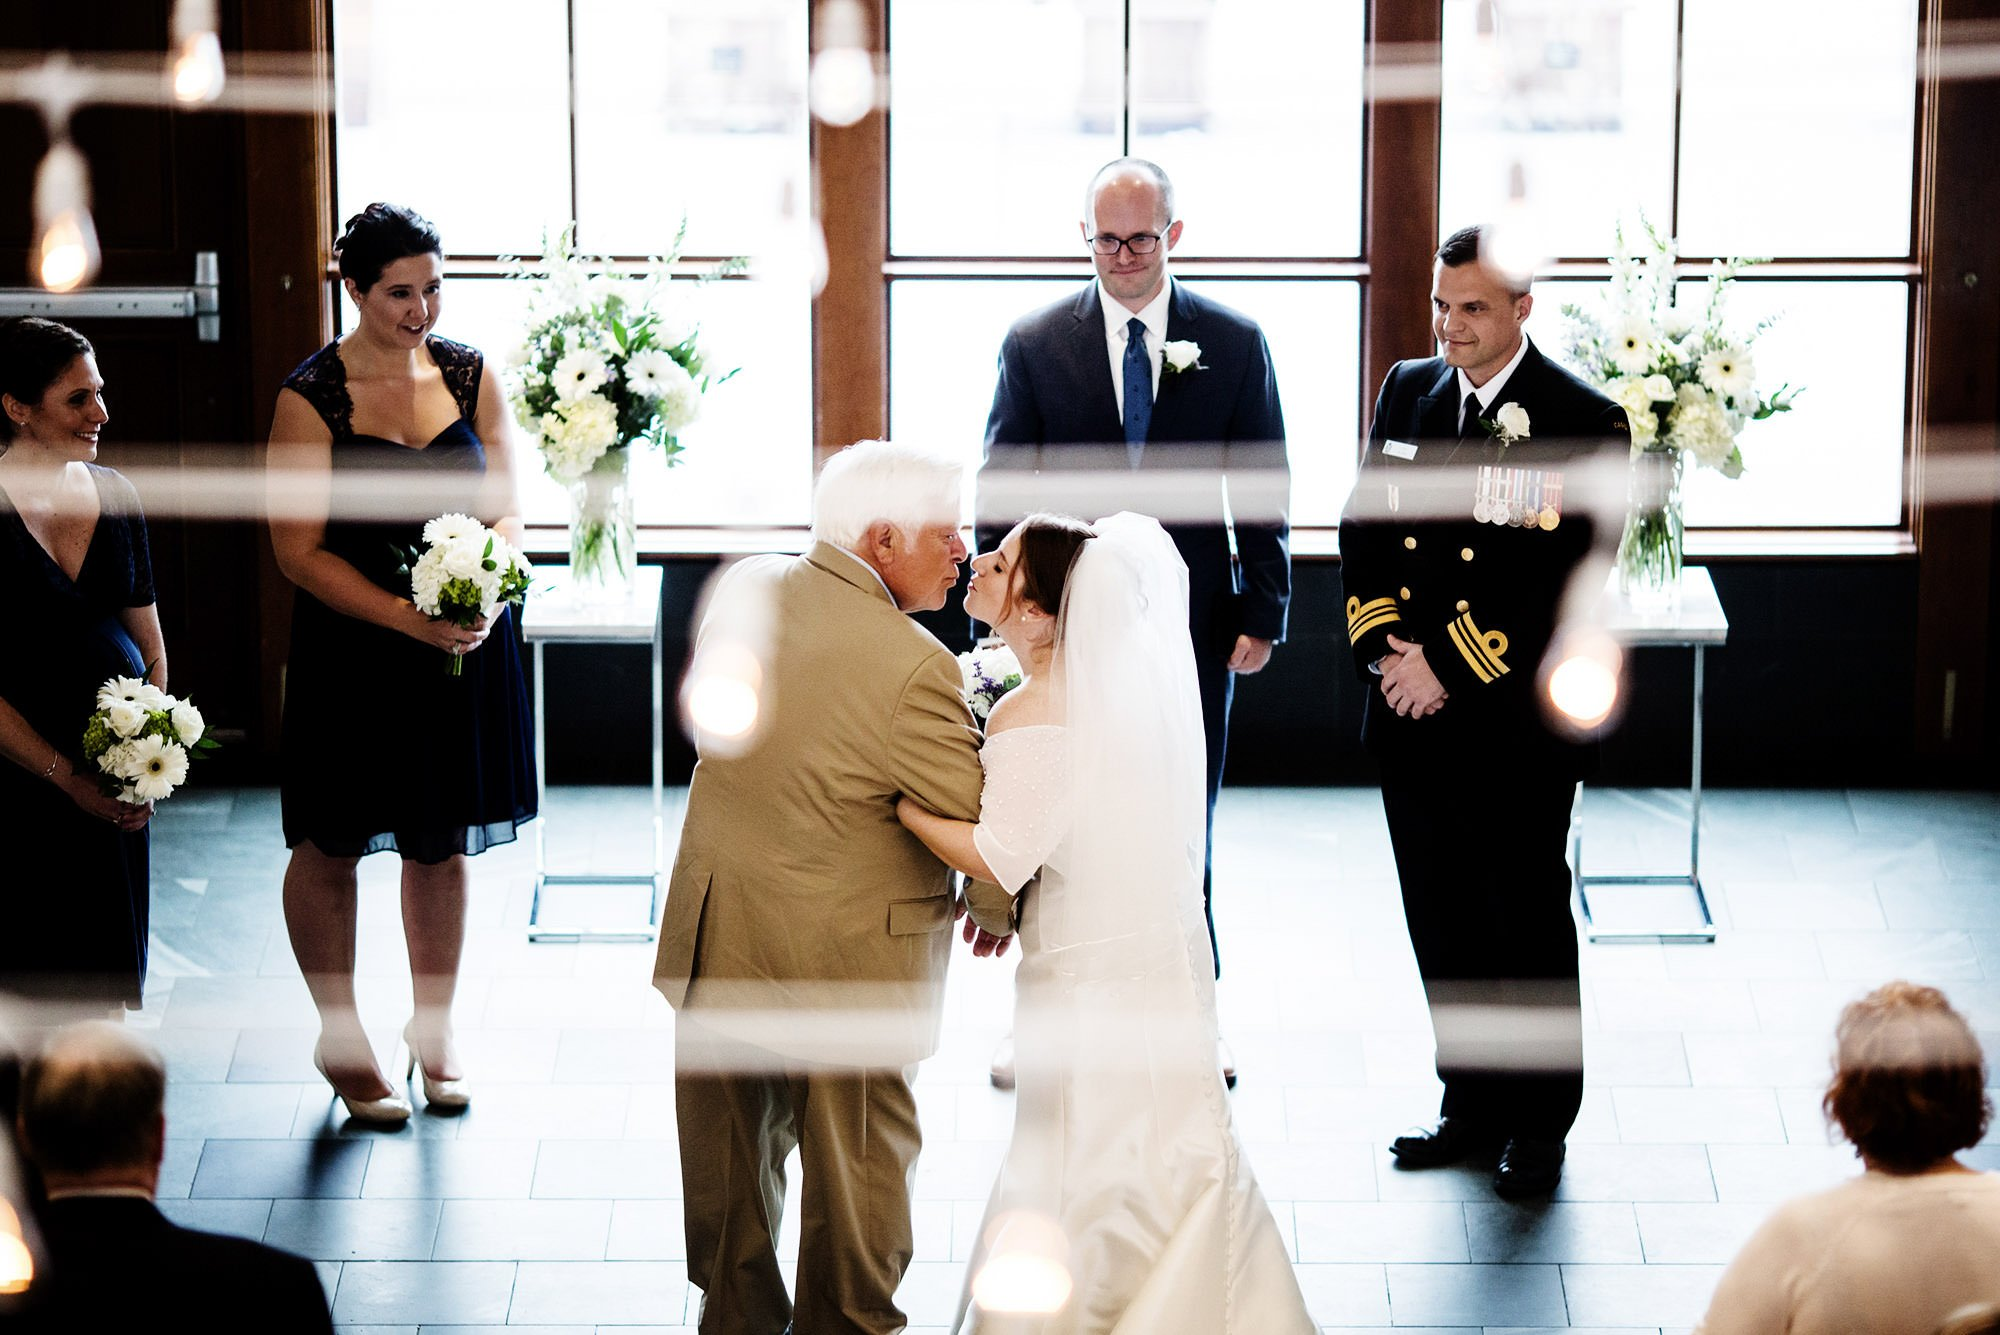 The bride kisses her father during the wedding ceremony at Exchange Boston.